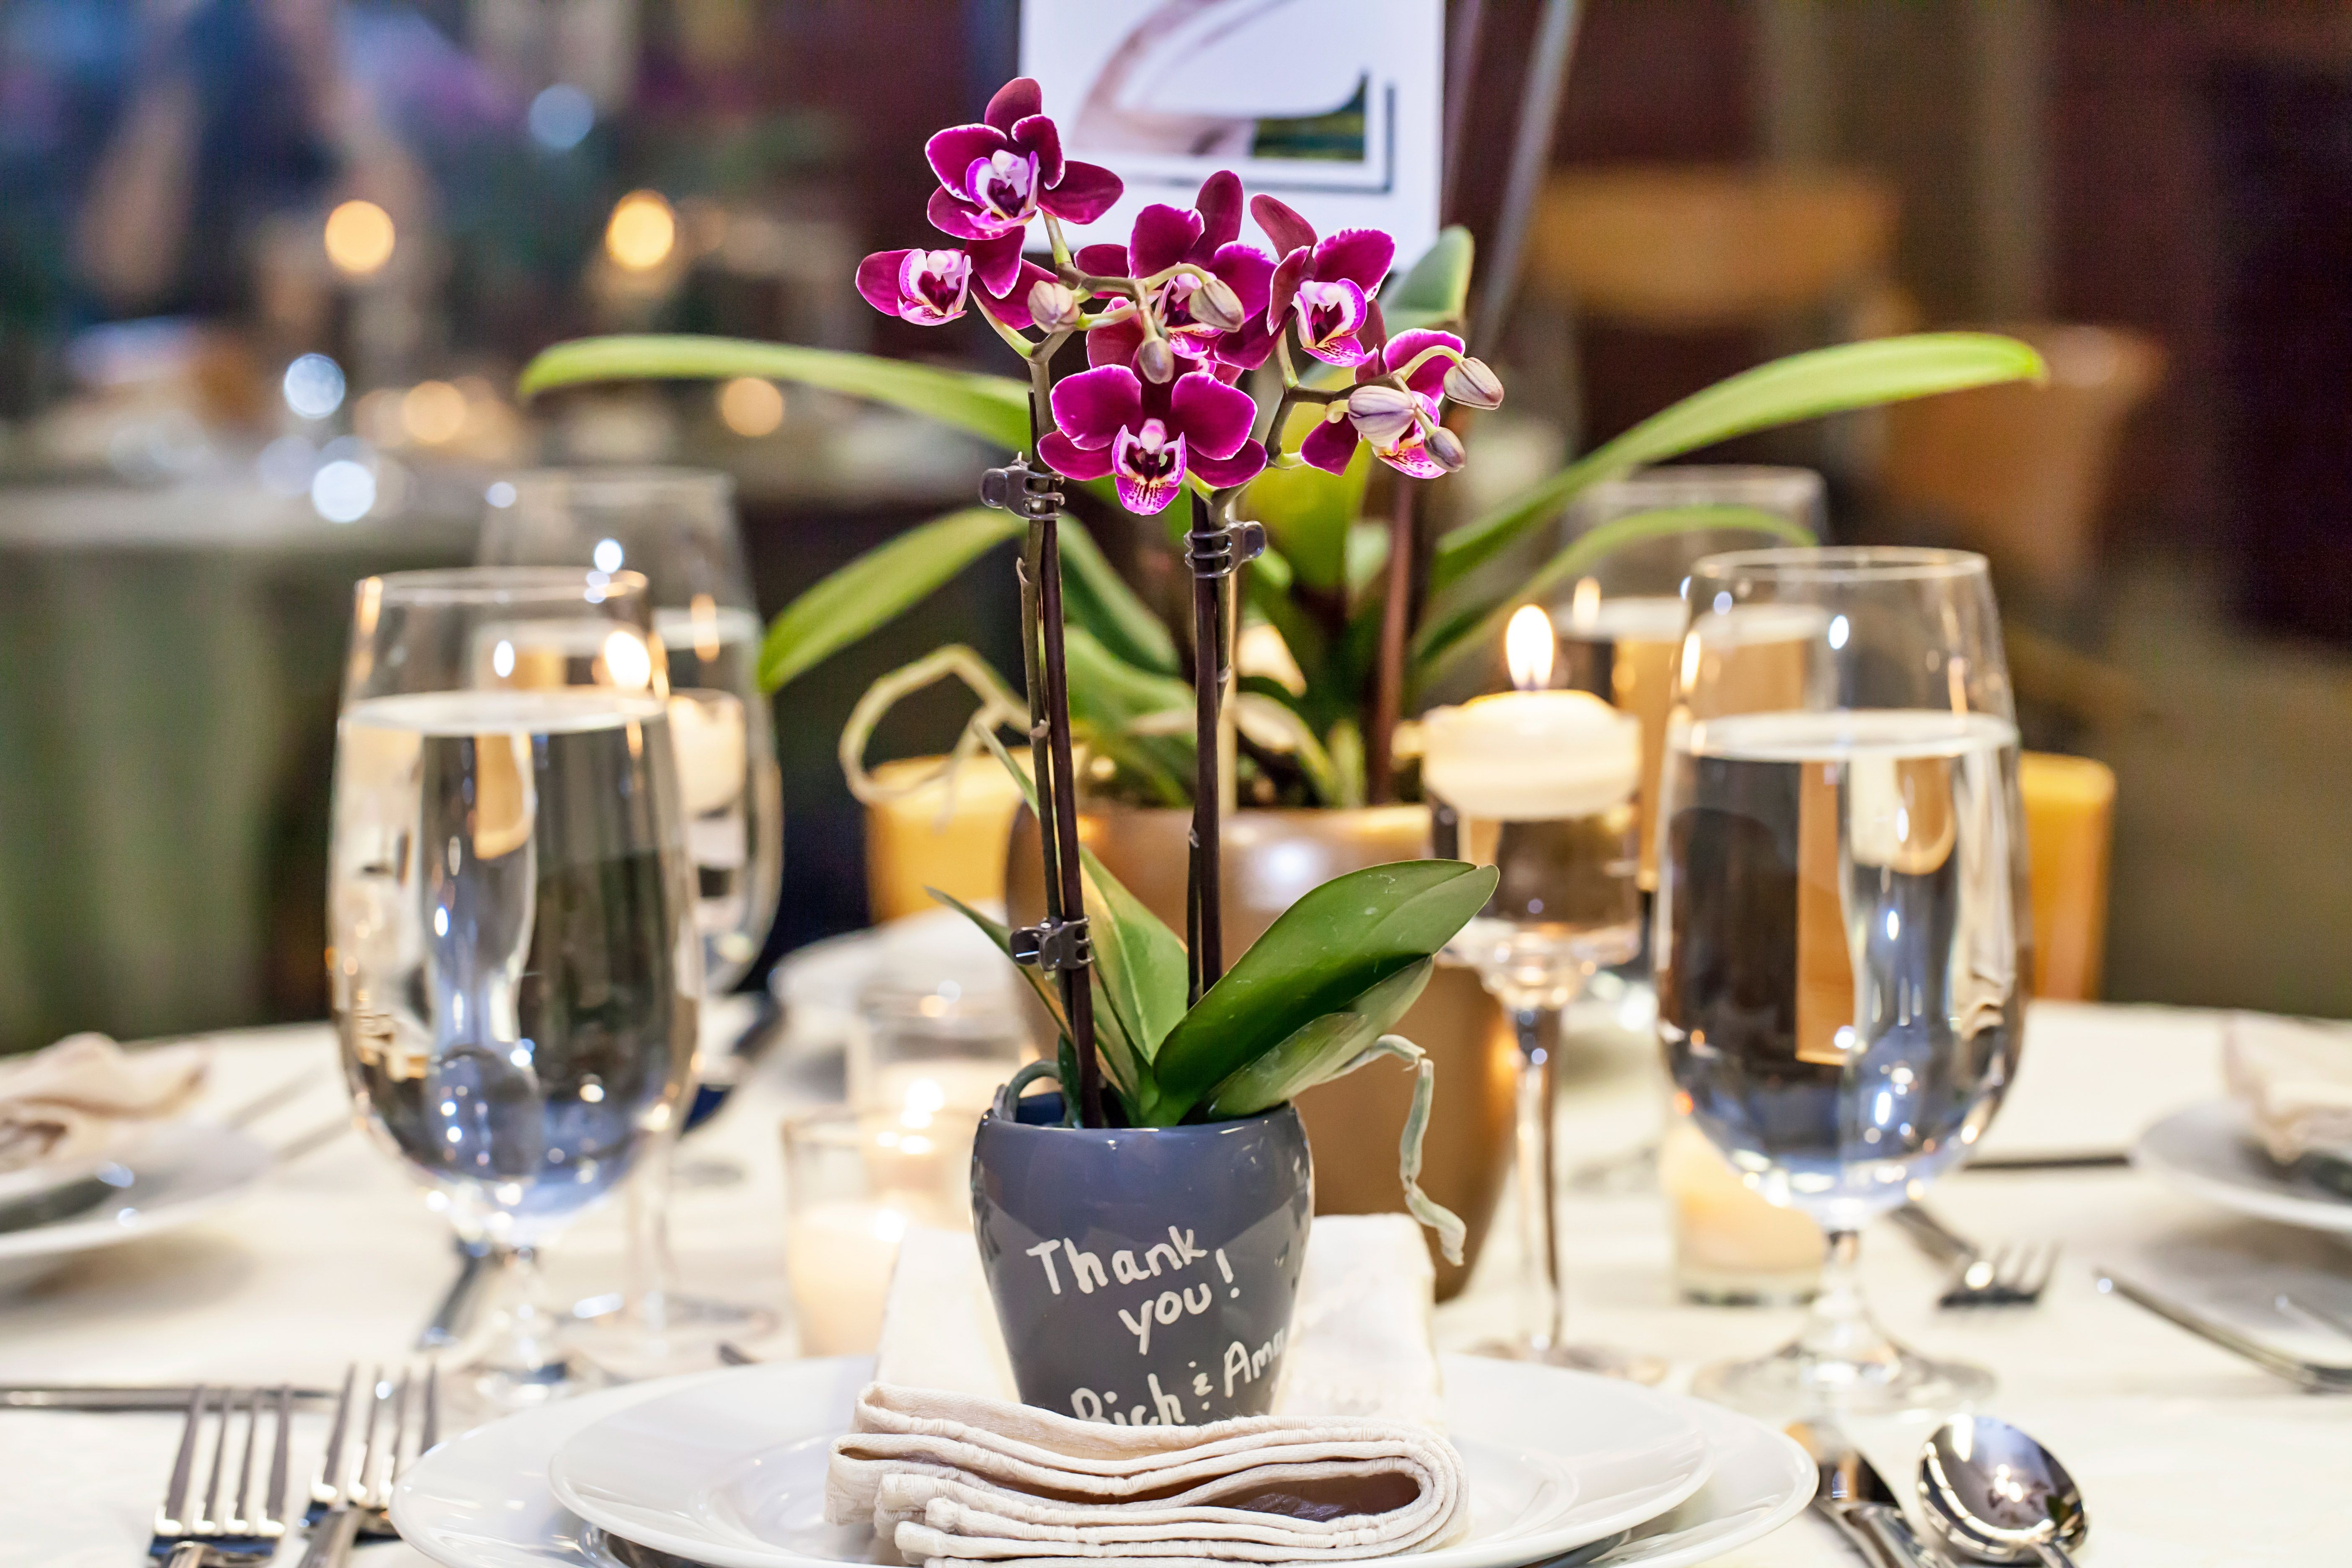 Giving Mini Orchids As Wedding Favors Leaves A Lasting Impression Wedding Favors Wedding Gifts For Guests Orchid Wedding